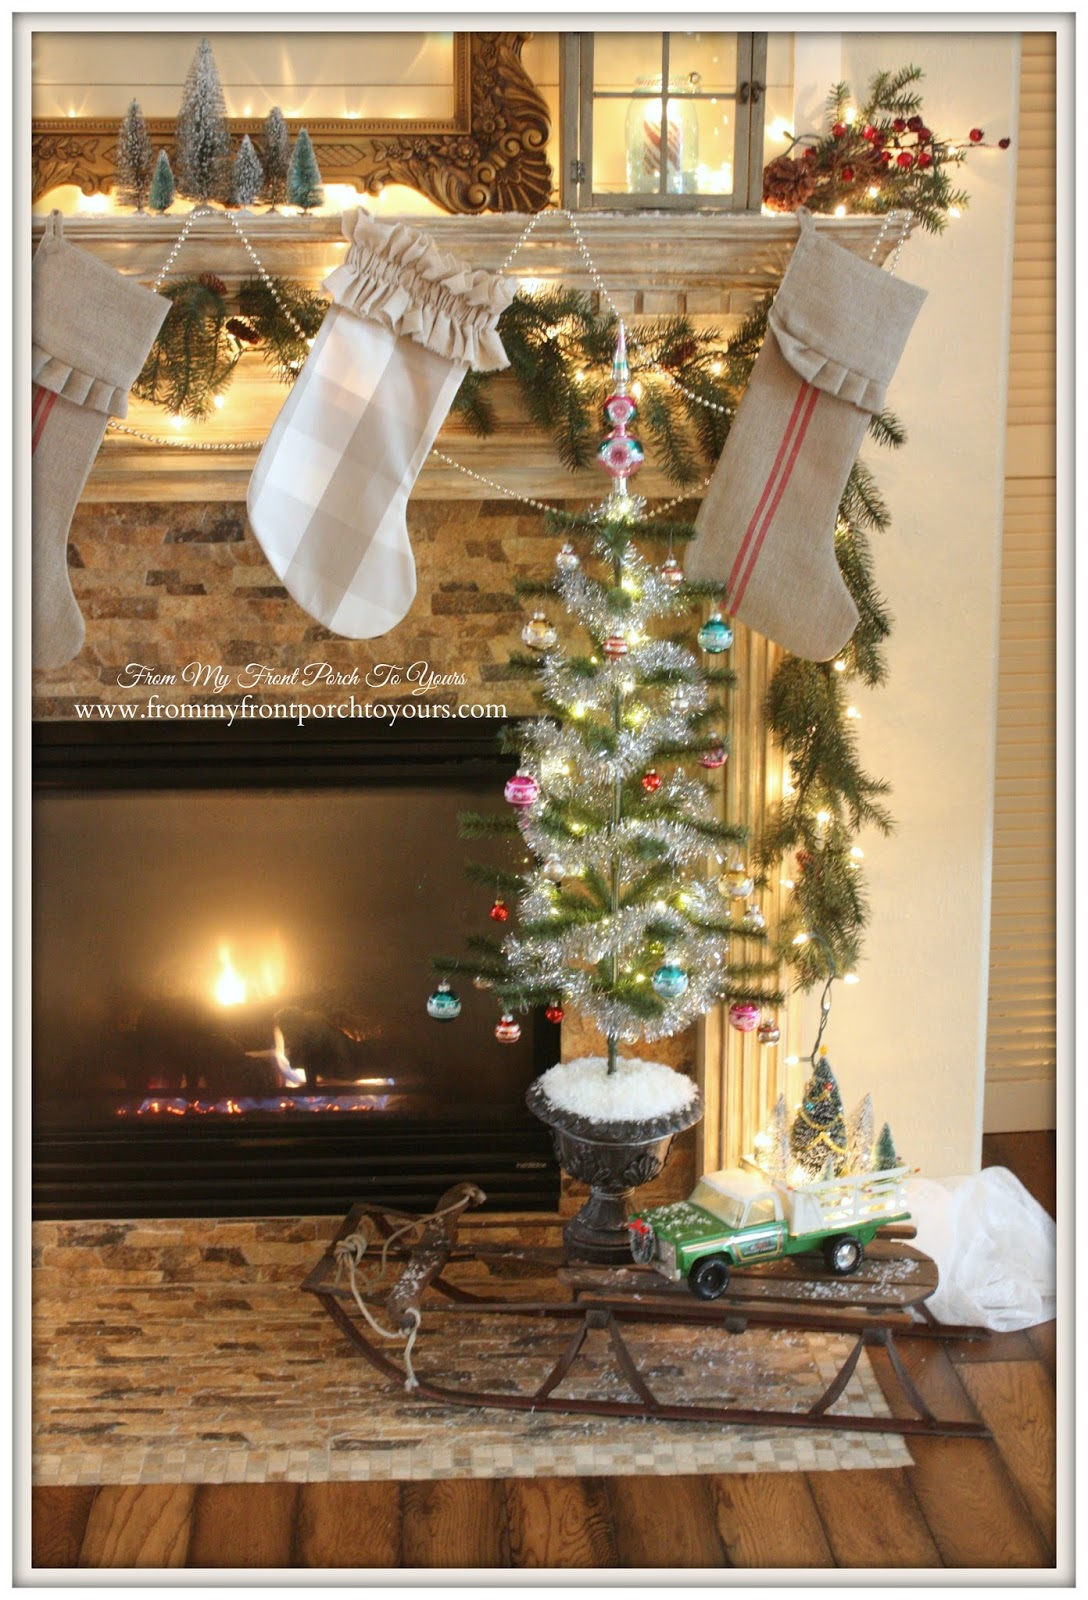 Wire Brush Christmas Tree-French Farmhouse Vintage Christmas Mantel-Vintage Sled-Stockings- From My Front Porch To Yours